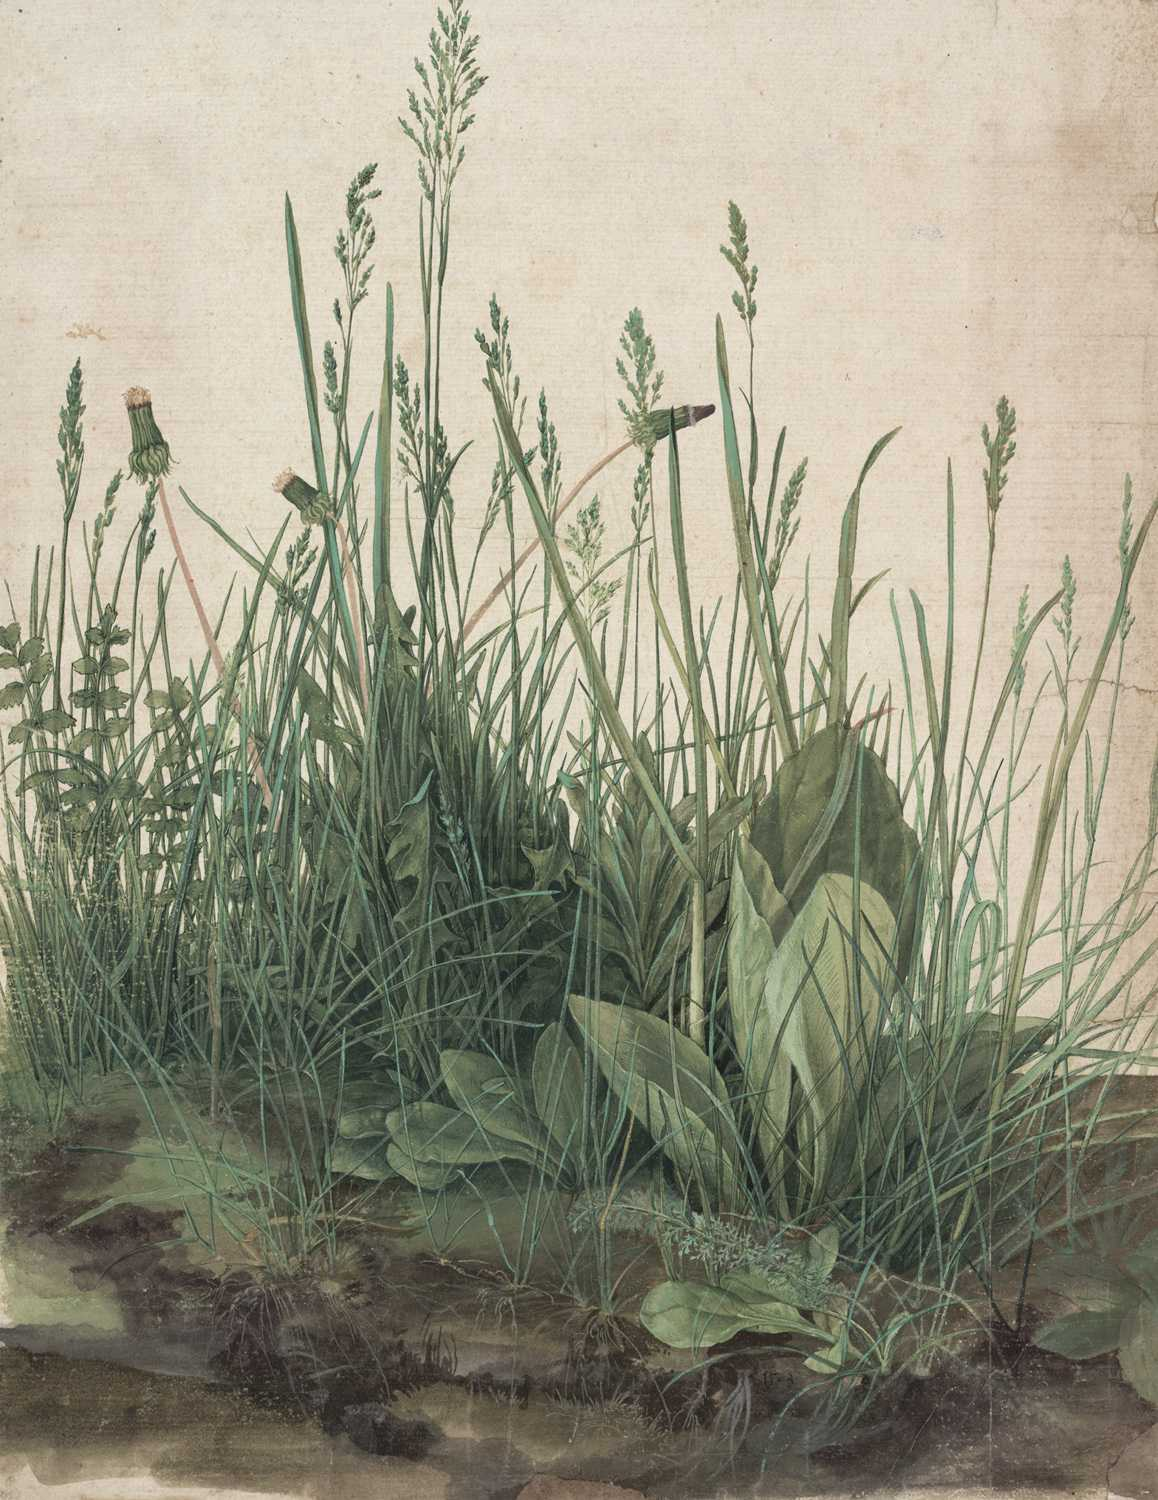 Albrecht Dürer The Large Piece of Turf, 1503 Watercolor and body color, heightened with white body color © The Albertina Museum, Wien